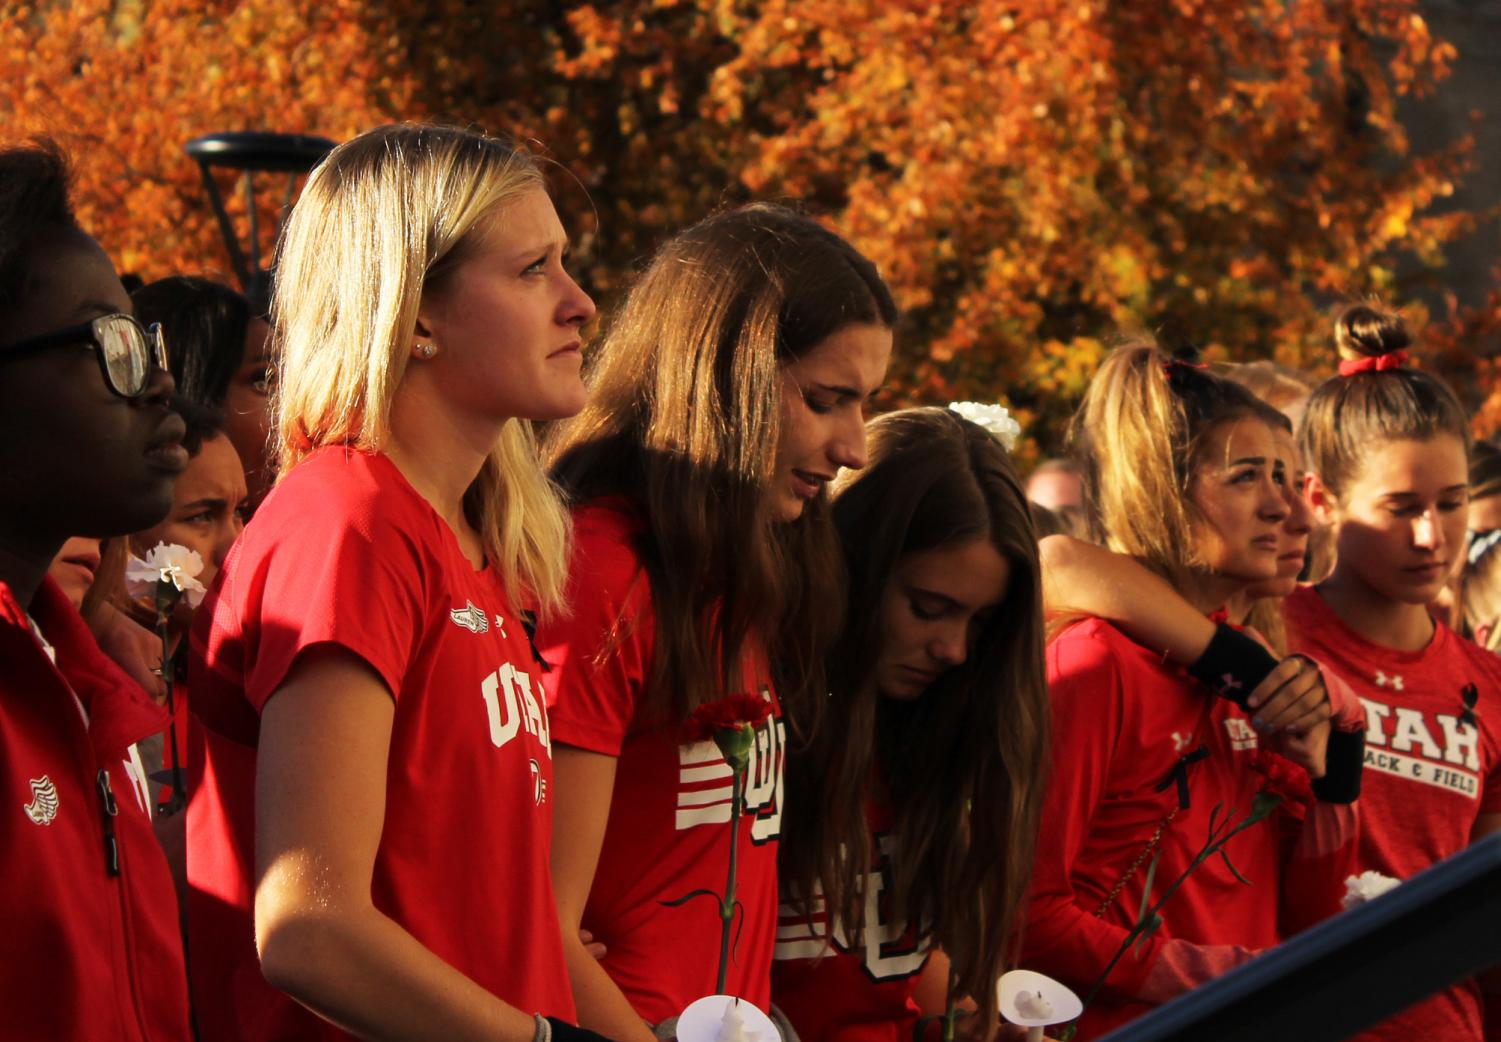 Students, staff, family and friends attend a vigil on the steps of the Park Building for Lauren McCluskey, who was tragically killed on campus at The University of Utah in Salt Lake City, Utah on Wednesday, Oct. 24, 2018. (Photo by Kiffer Creveling | The Daily Utah Chronicle)